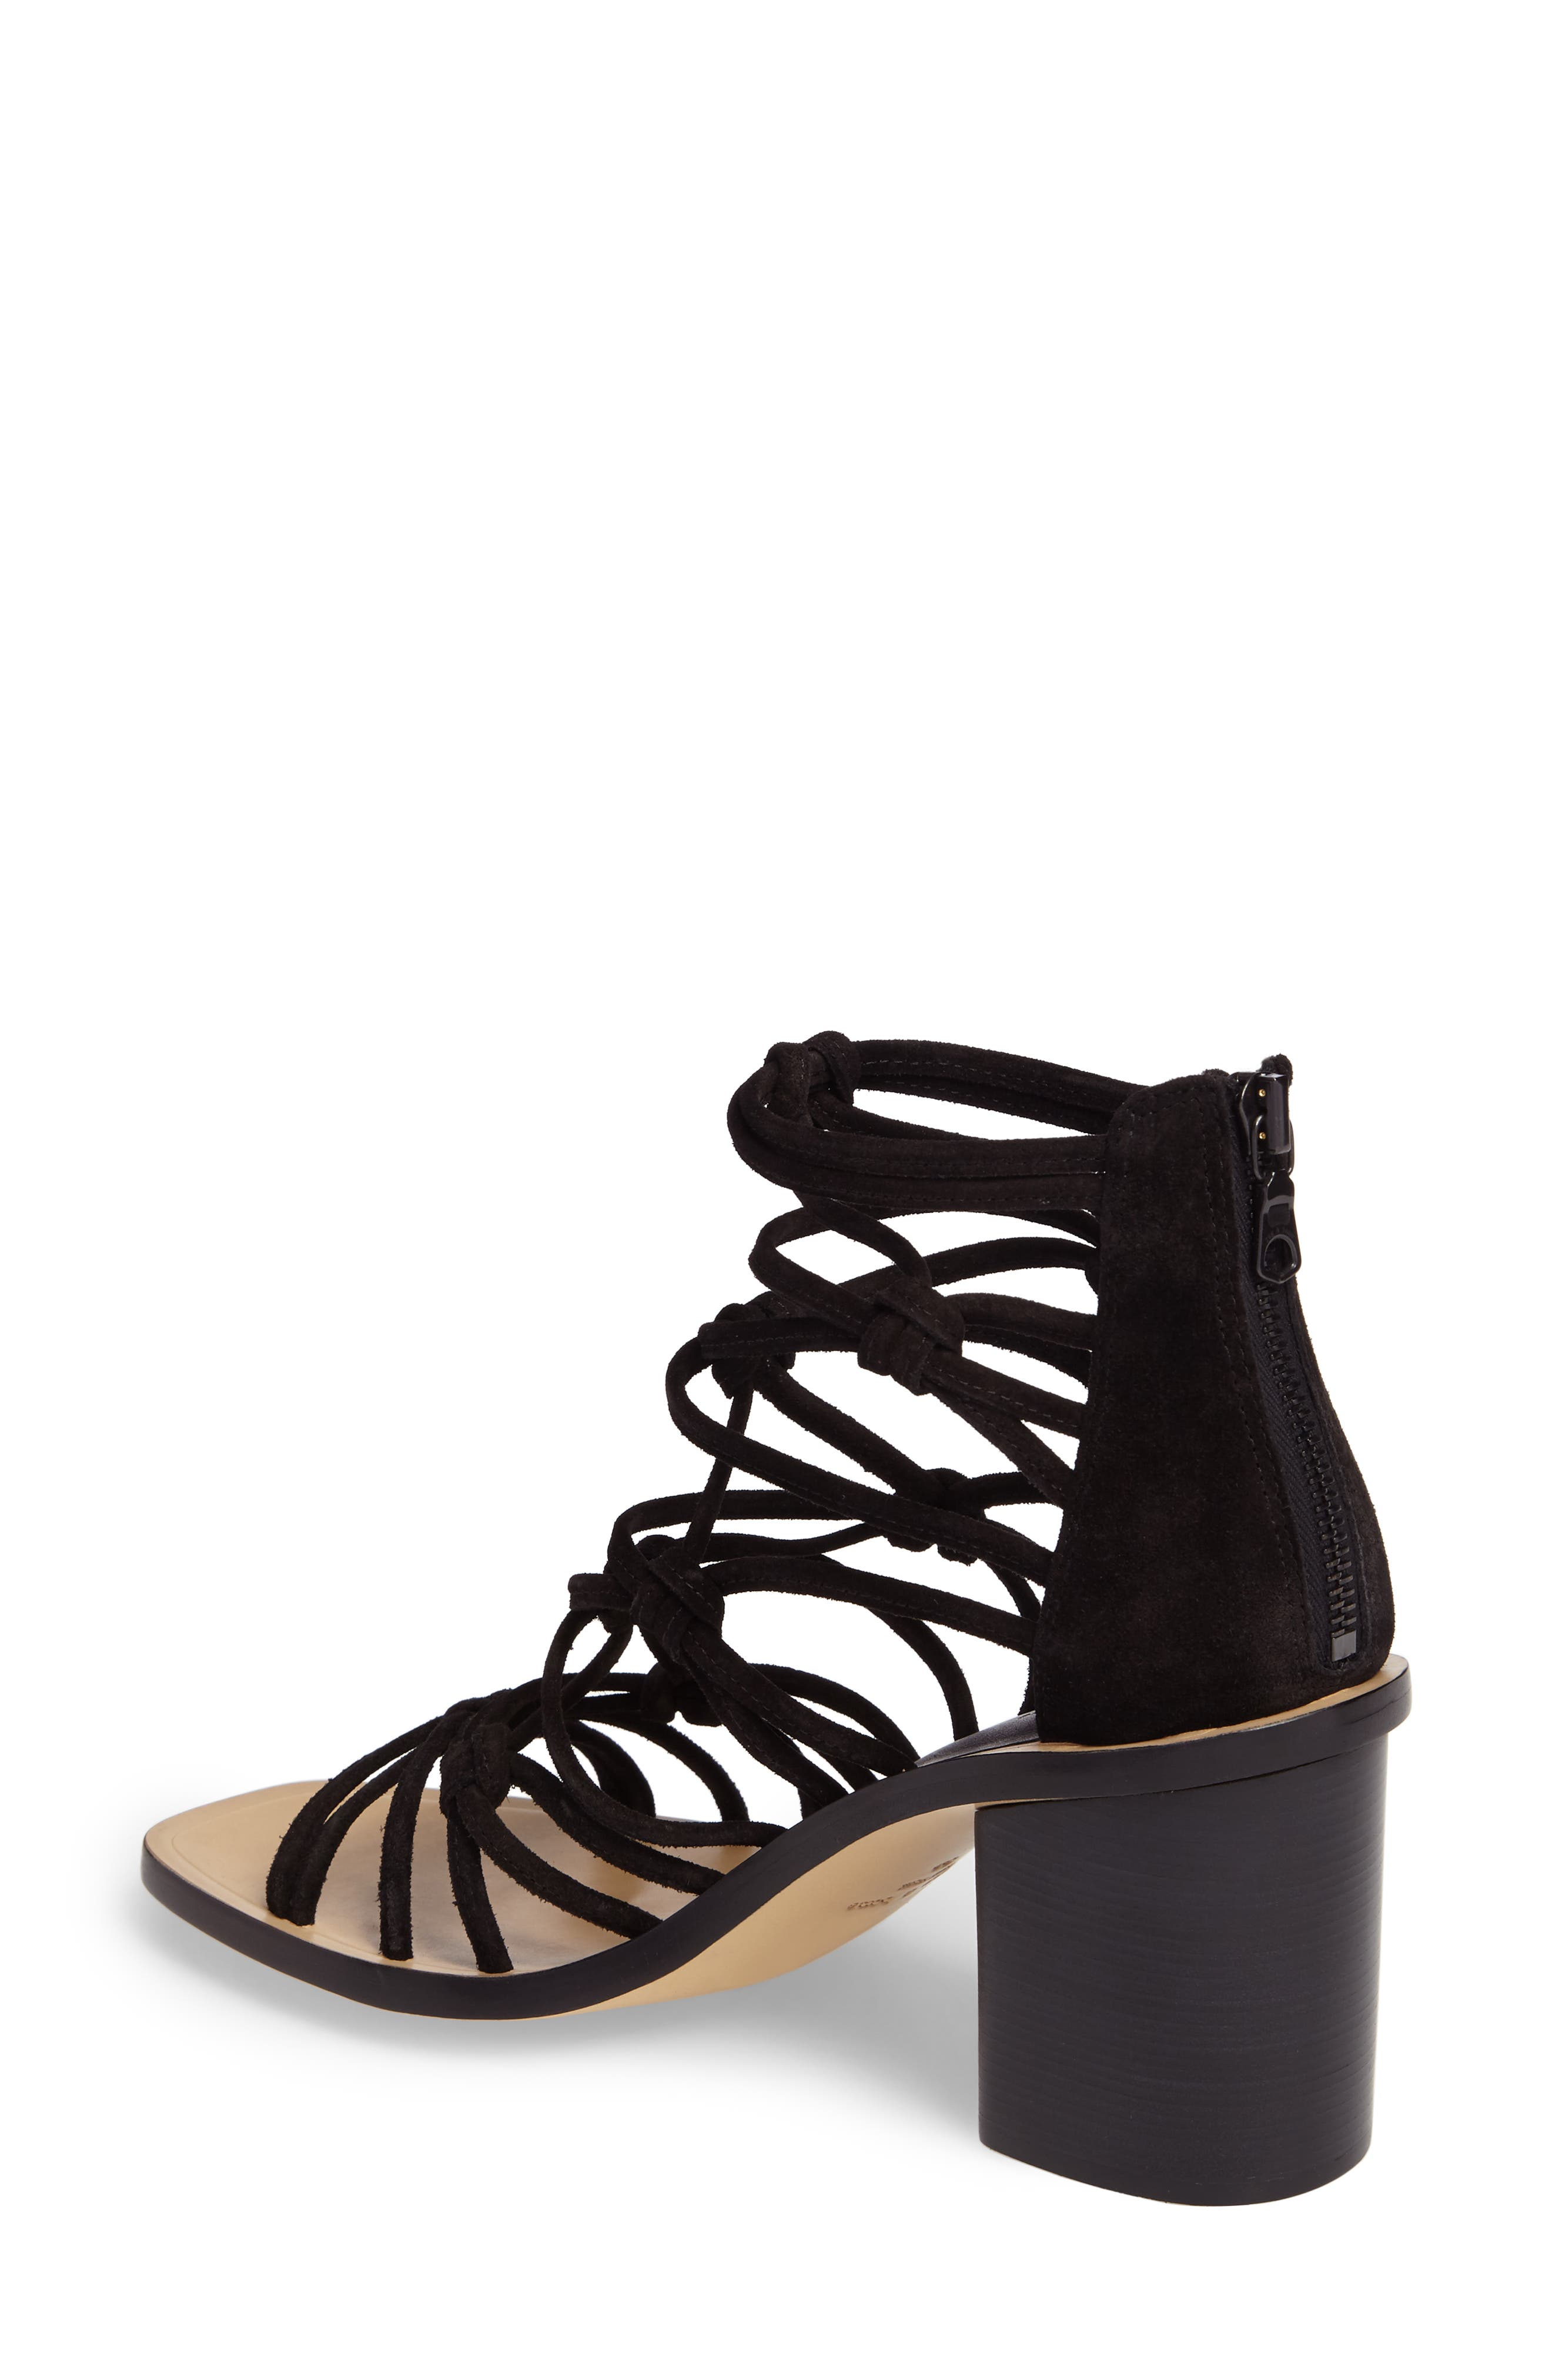 Camille Knotted Strappy Sandal,                             Alternate thumbnail 2, color,                             Black Suede